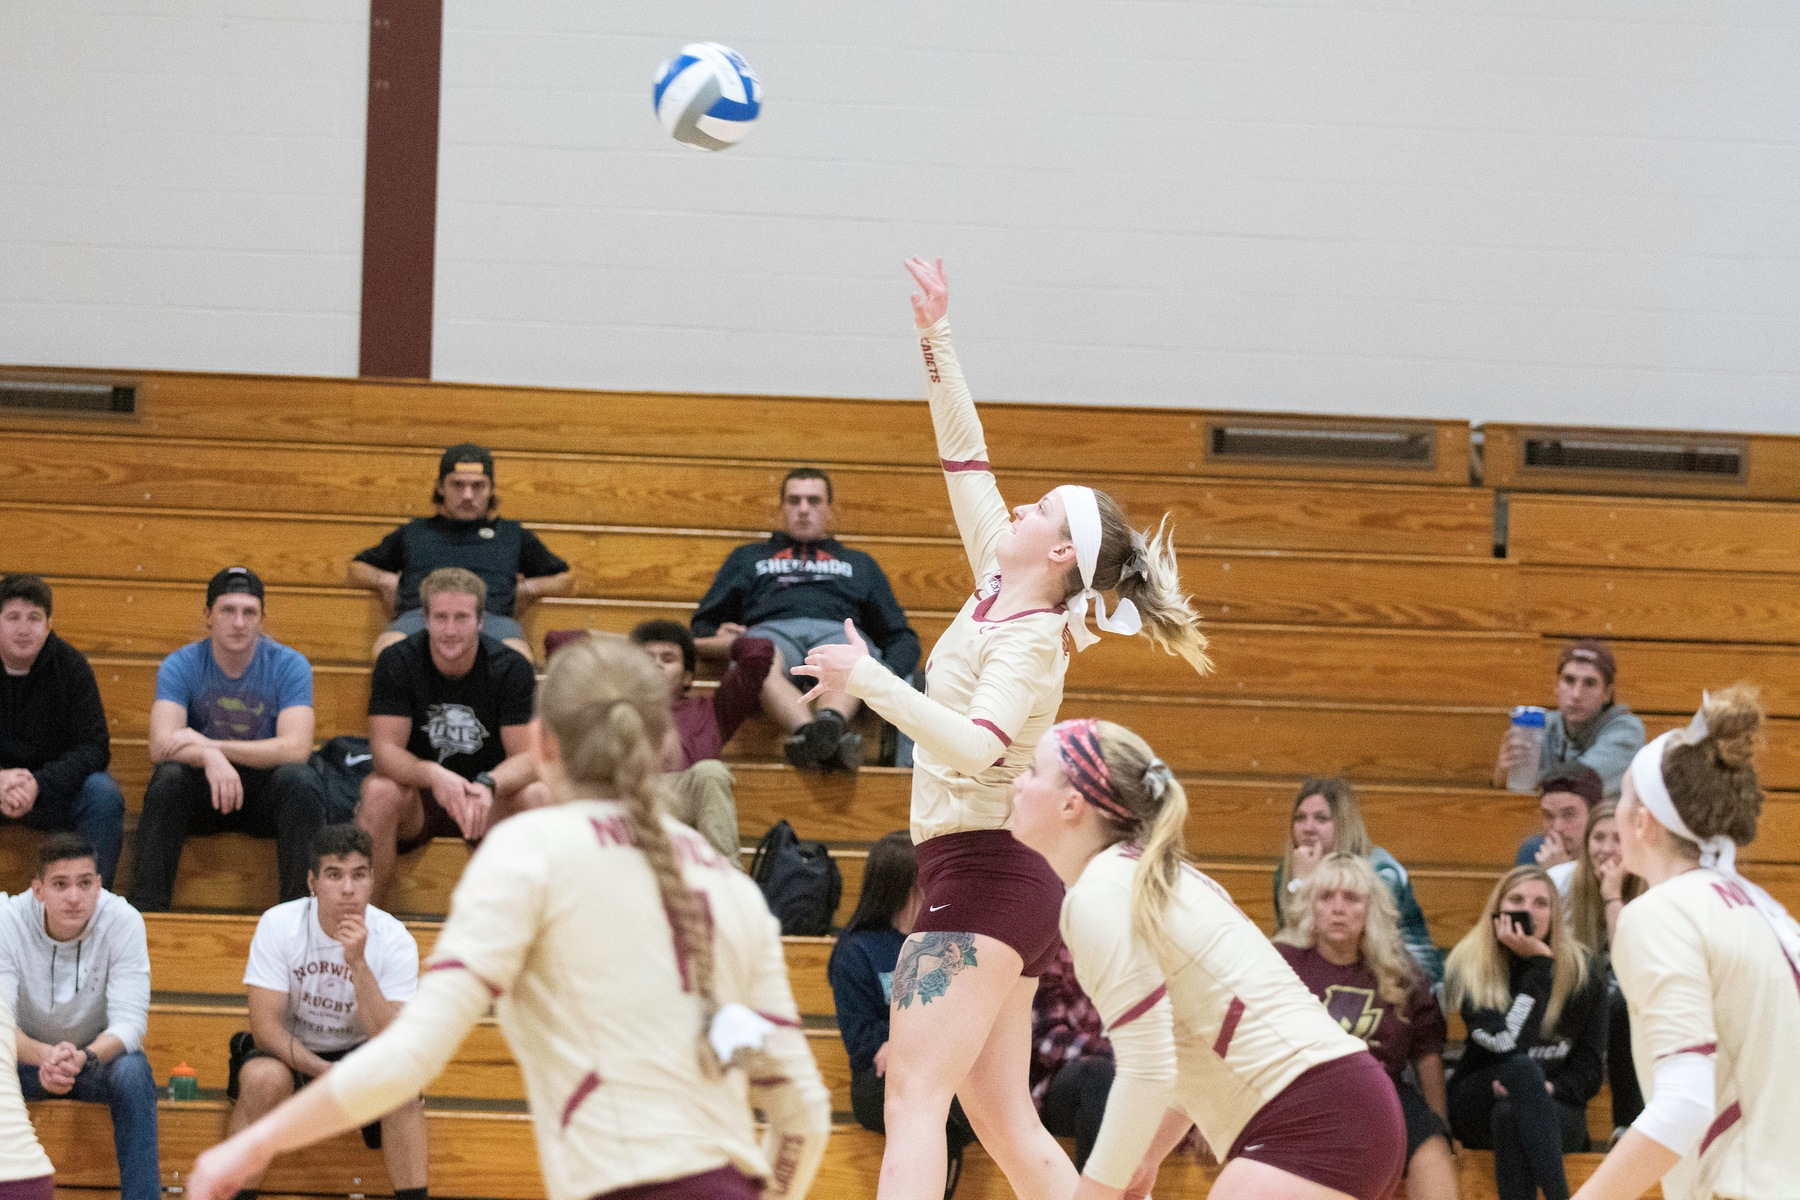 Volleyball: Cadets split non-conference tri-match, defeats MCLA 3-2